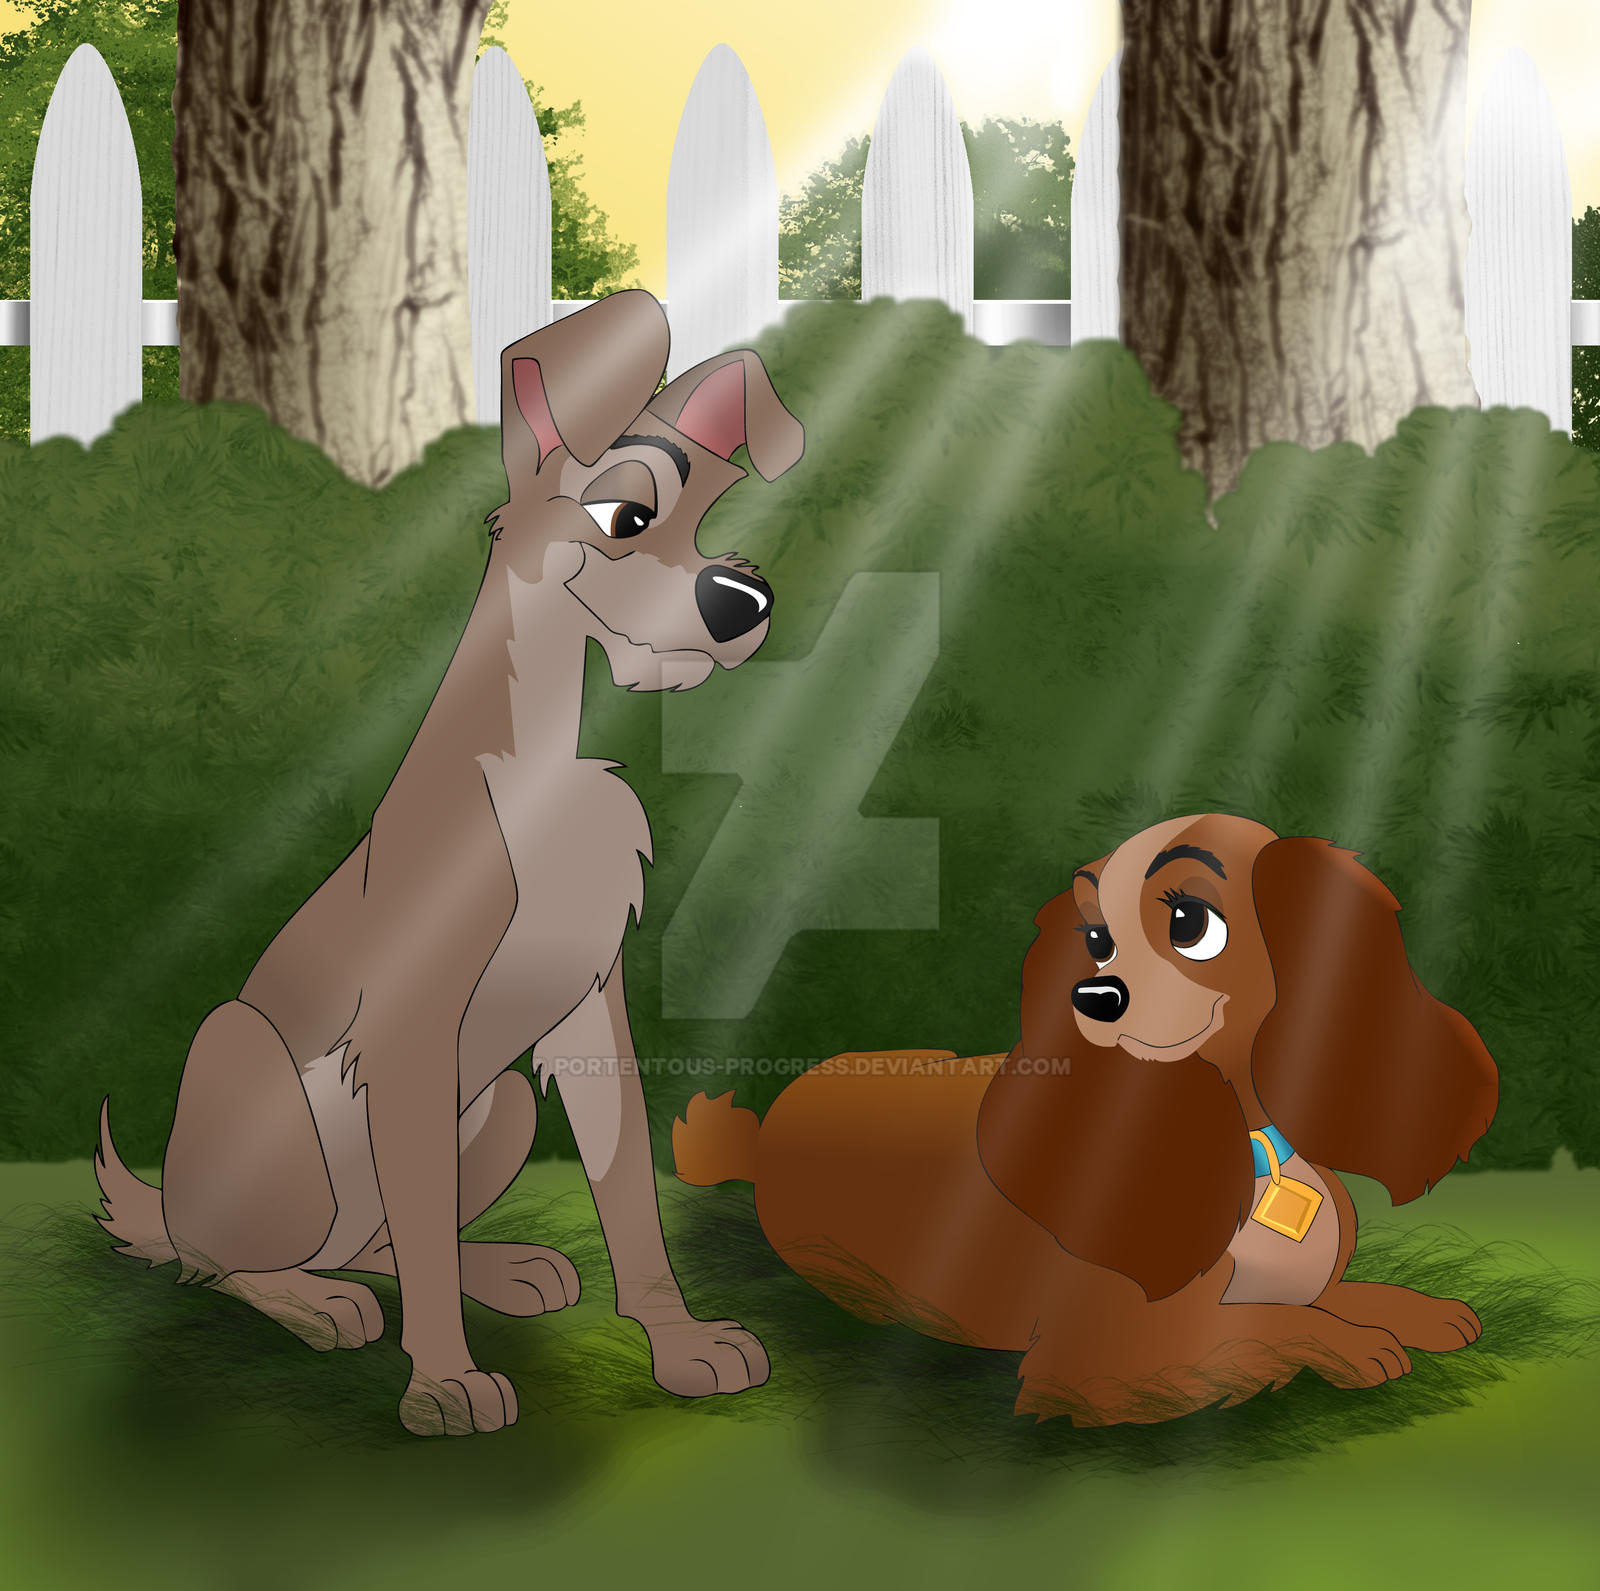 Lady and the Tramp by Portentous-Progress